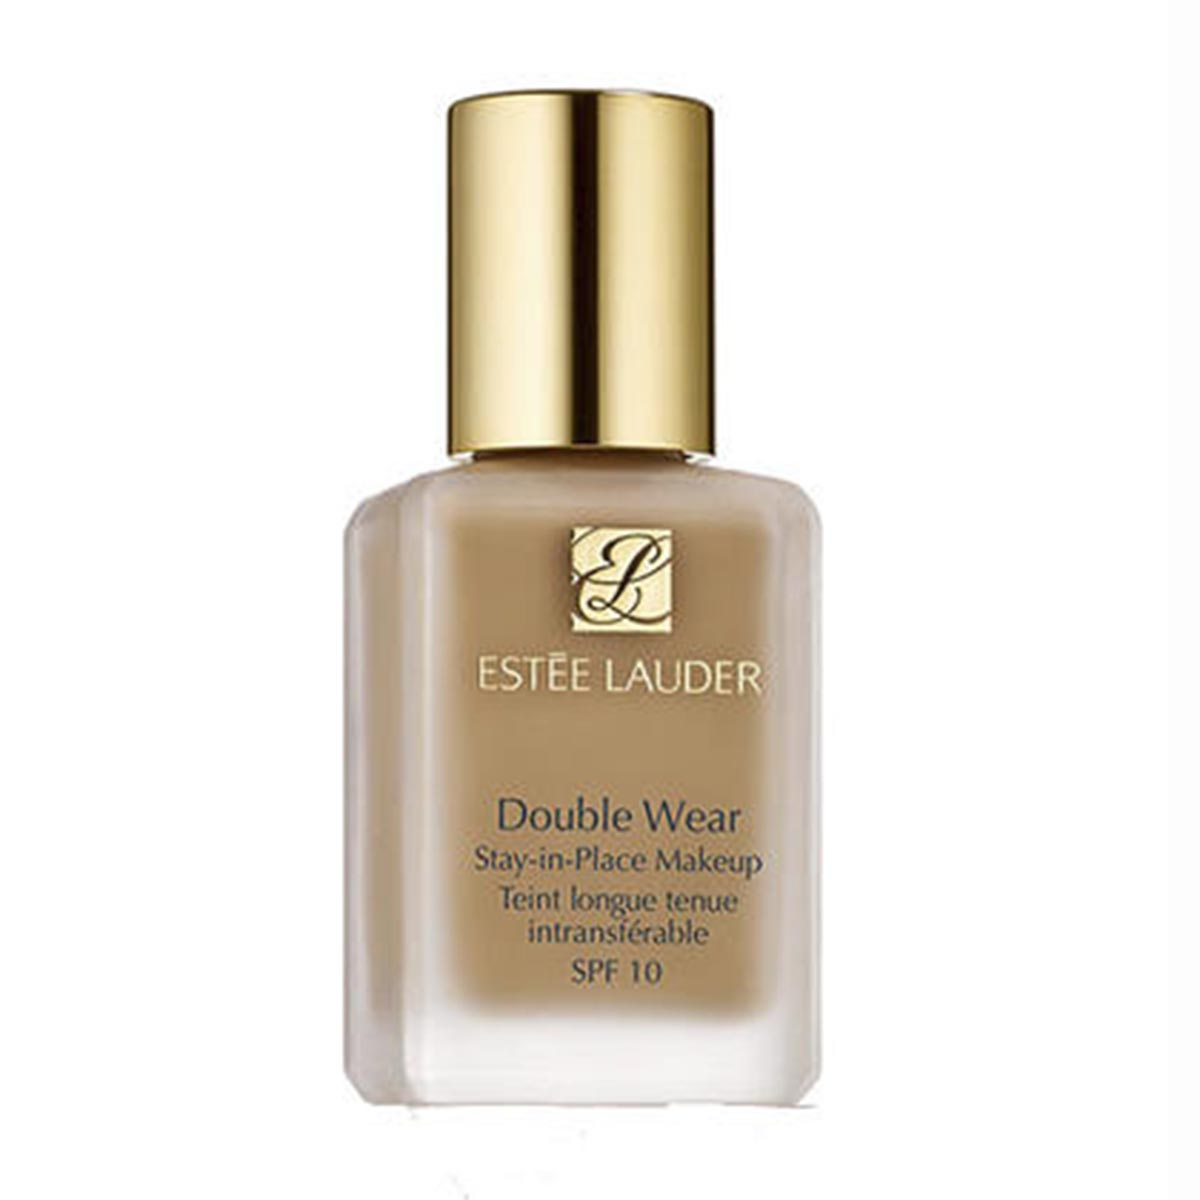 Estee lauder double wear nude water fresh makeup fawn